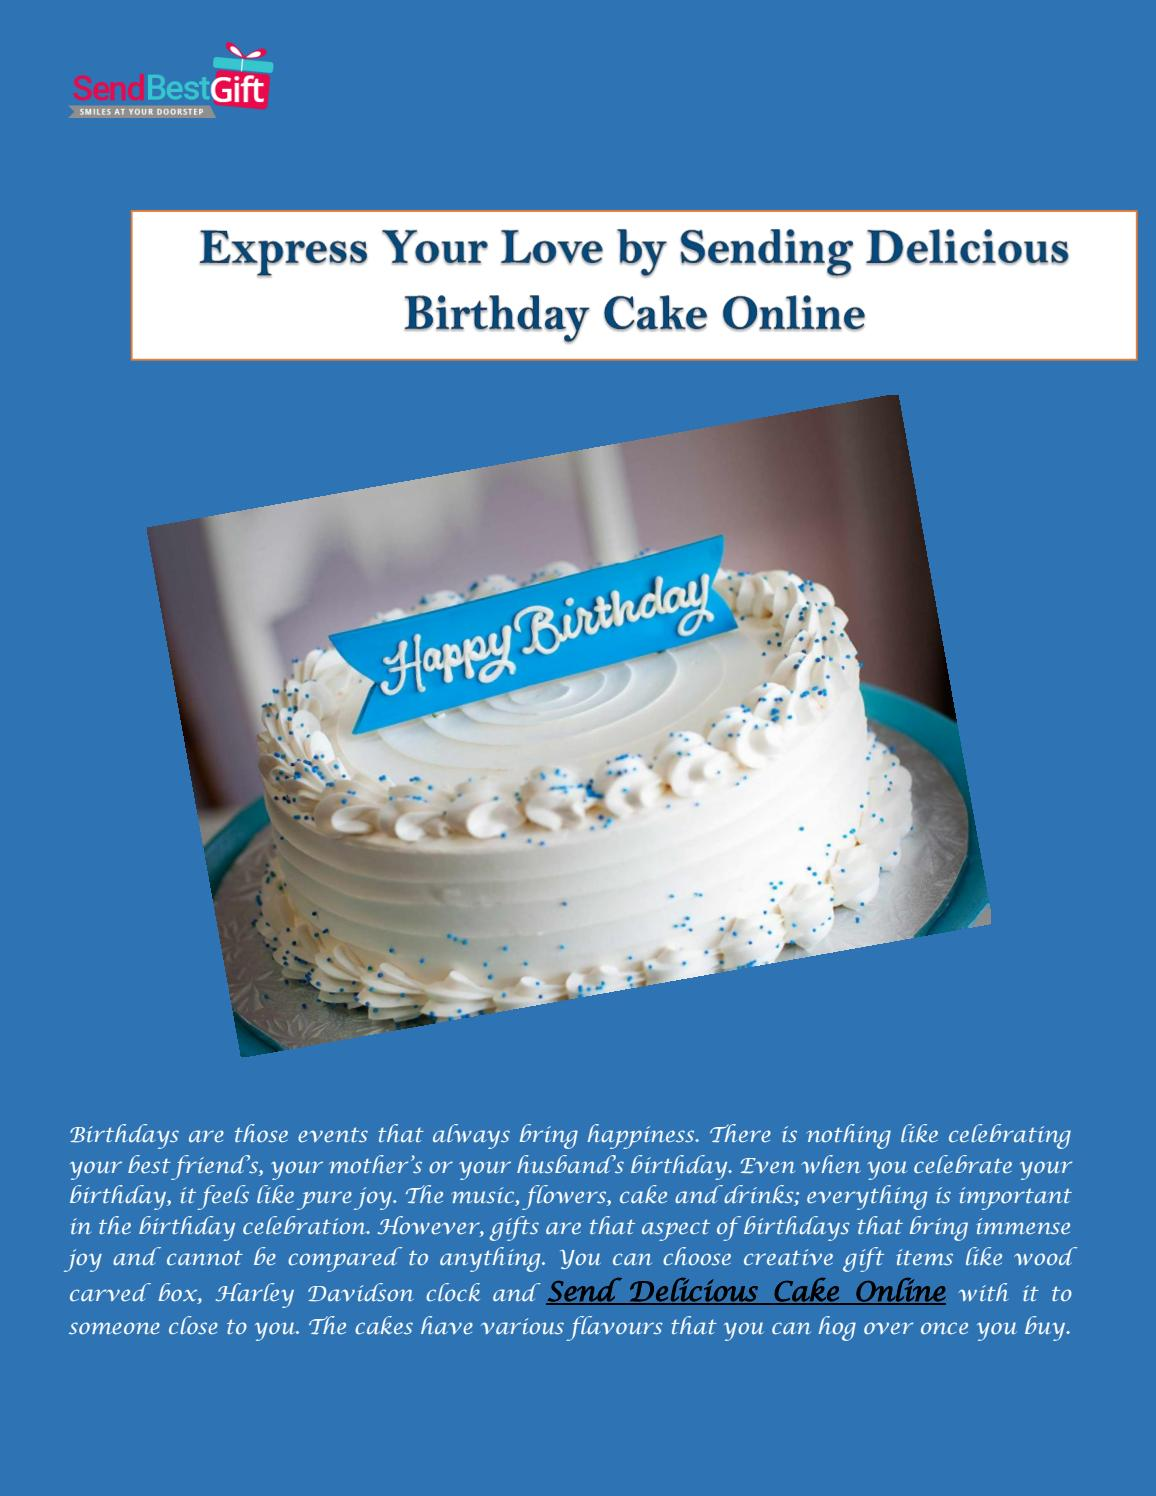 Astonishing Express Your Love By Sending Delicious Birthday Cake Online By Funny Birthday Cards Online Overcheapnameinfo